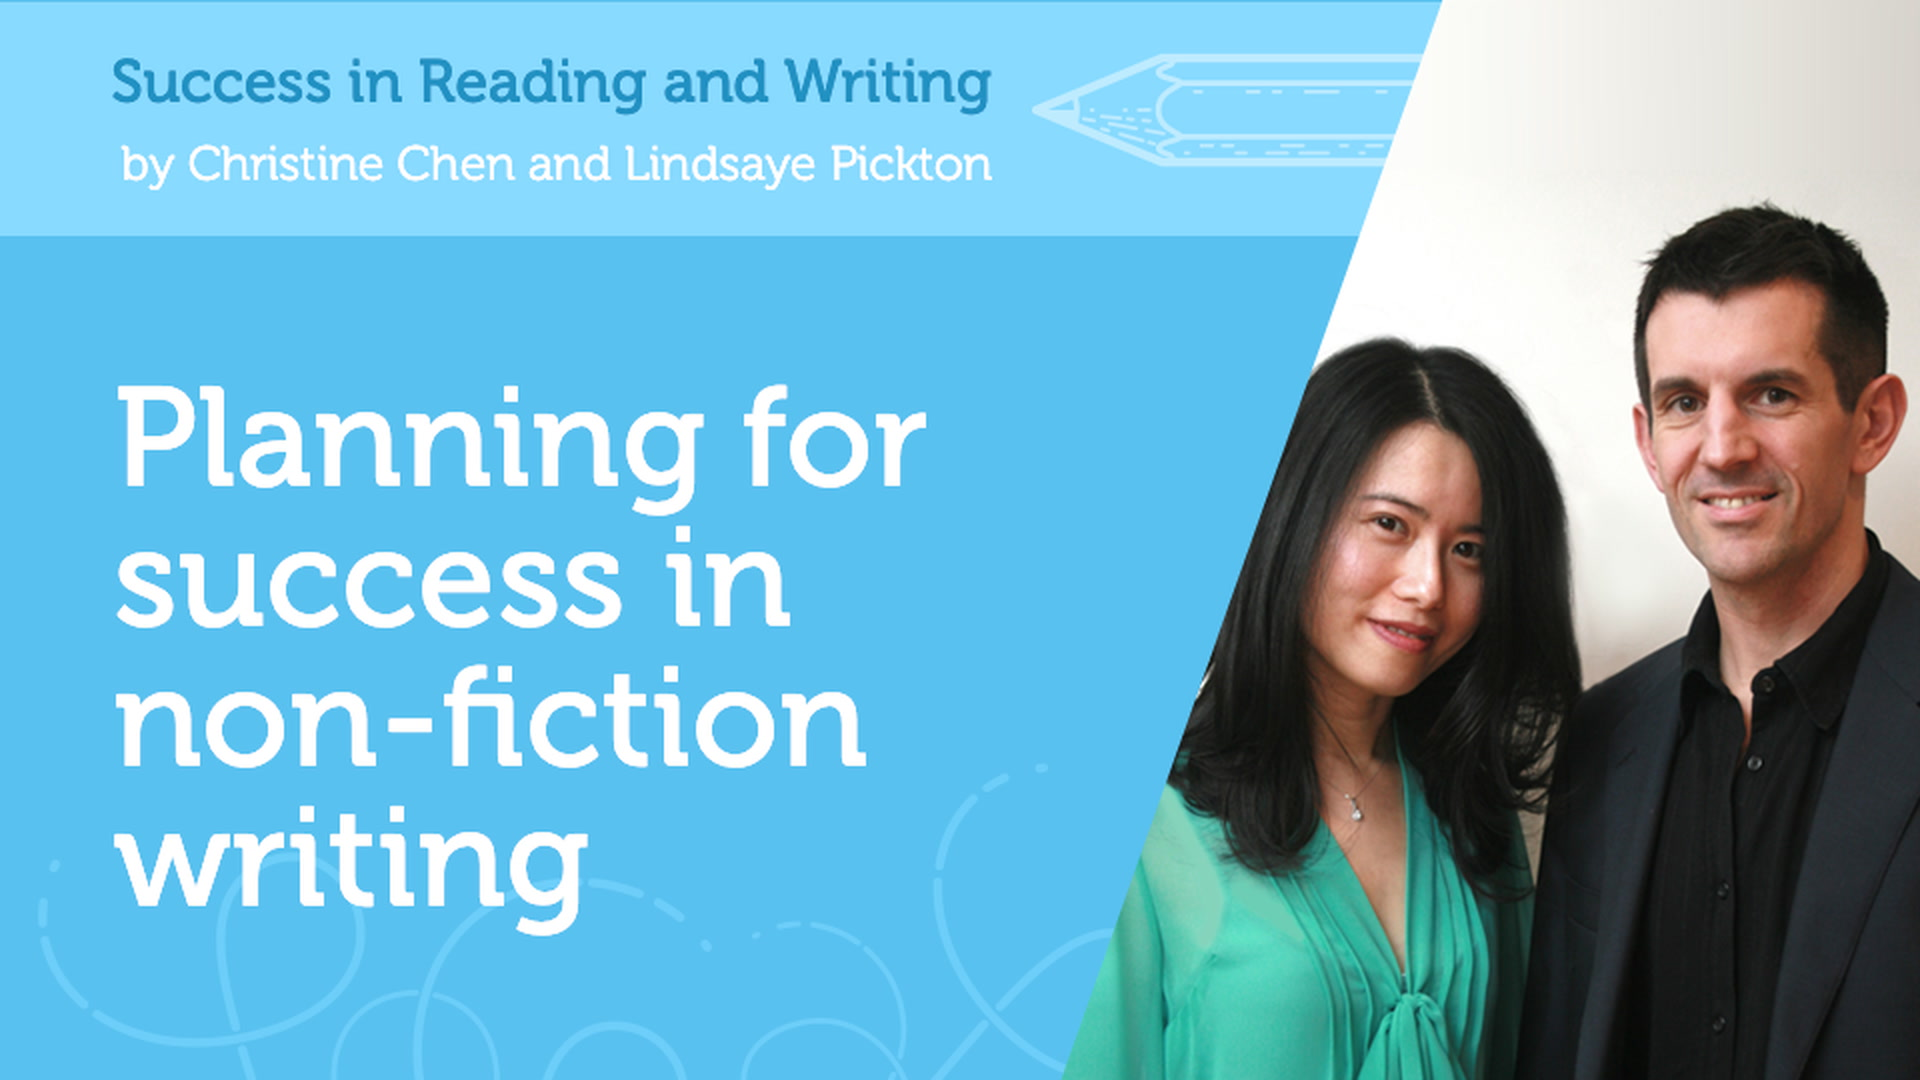 Planning for success in non-fiction writing